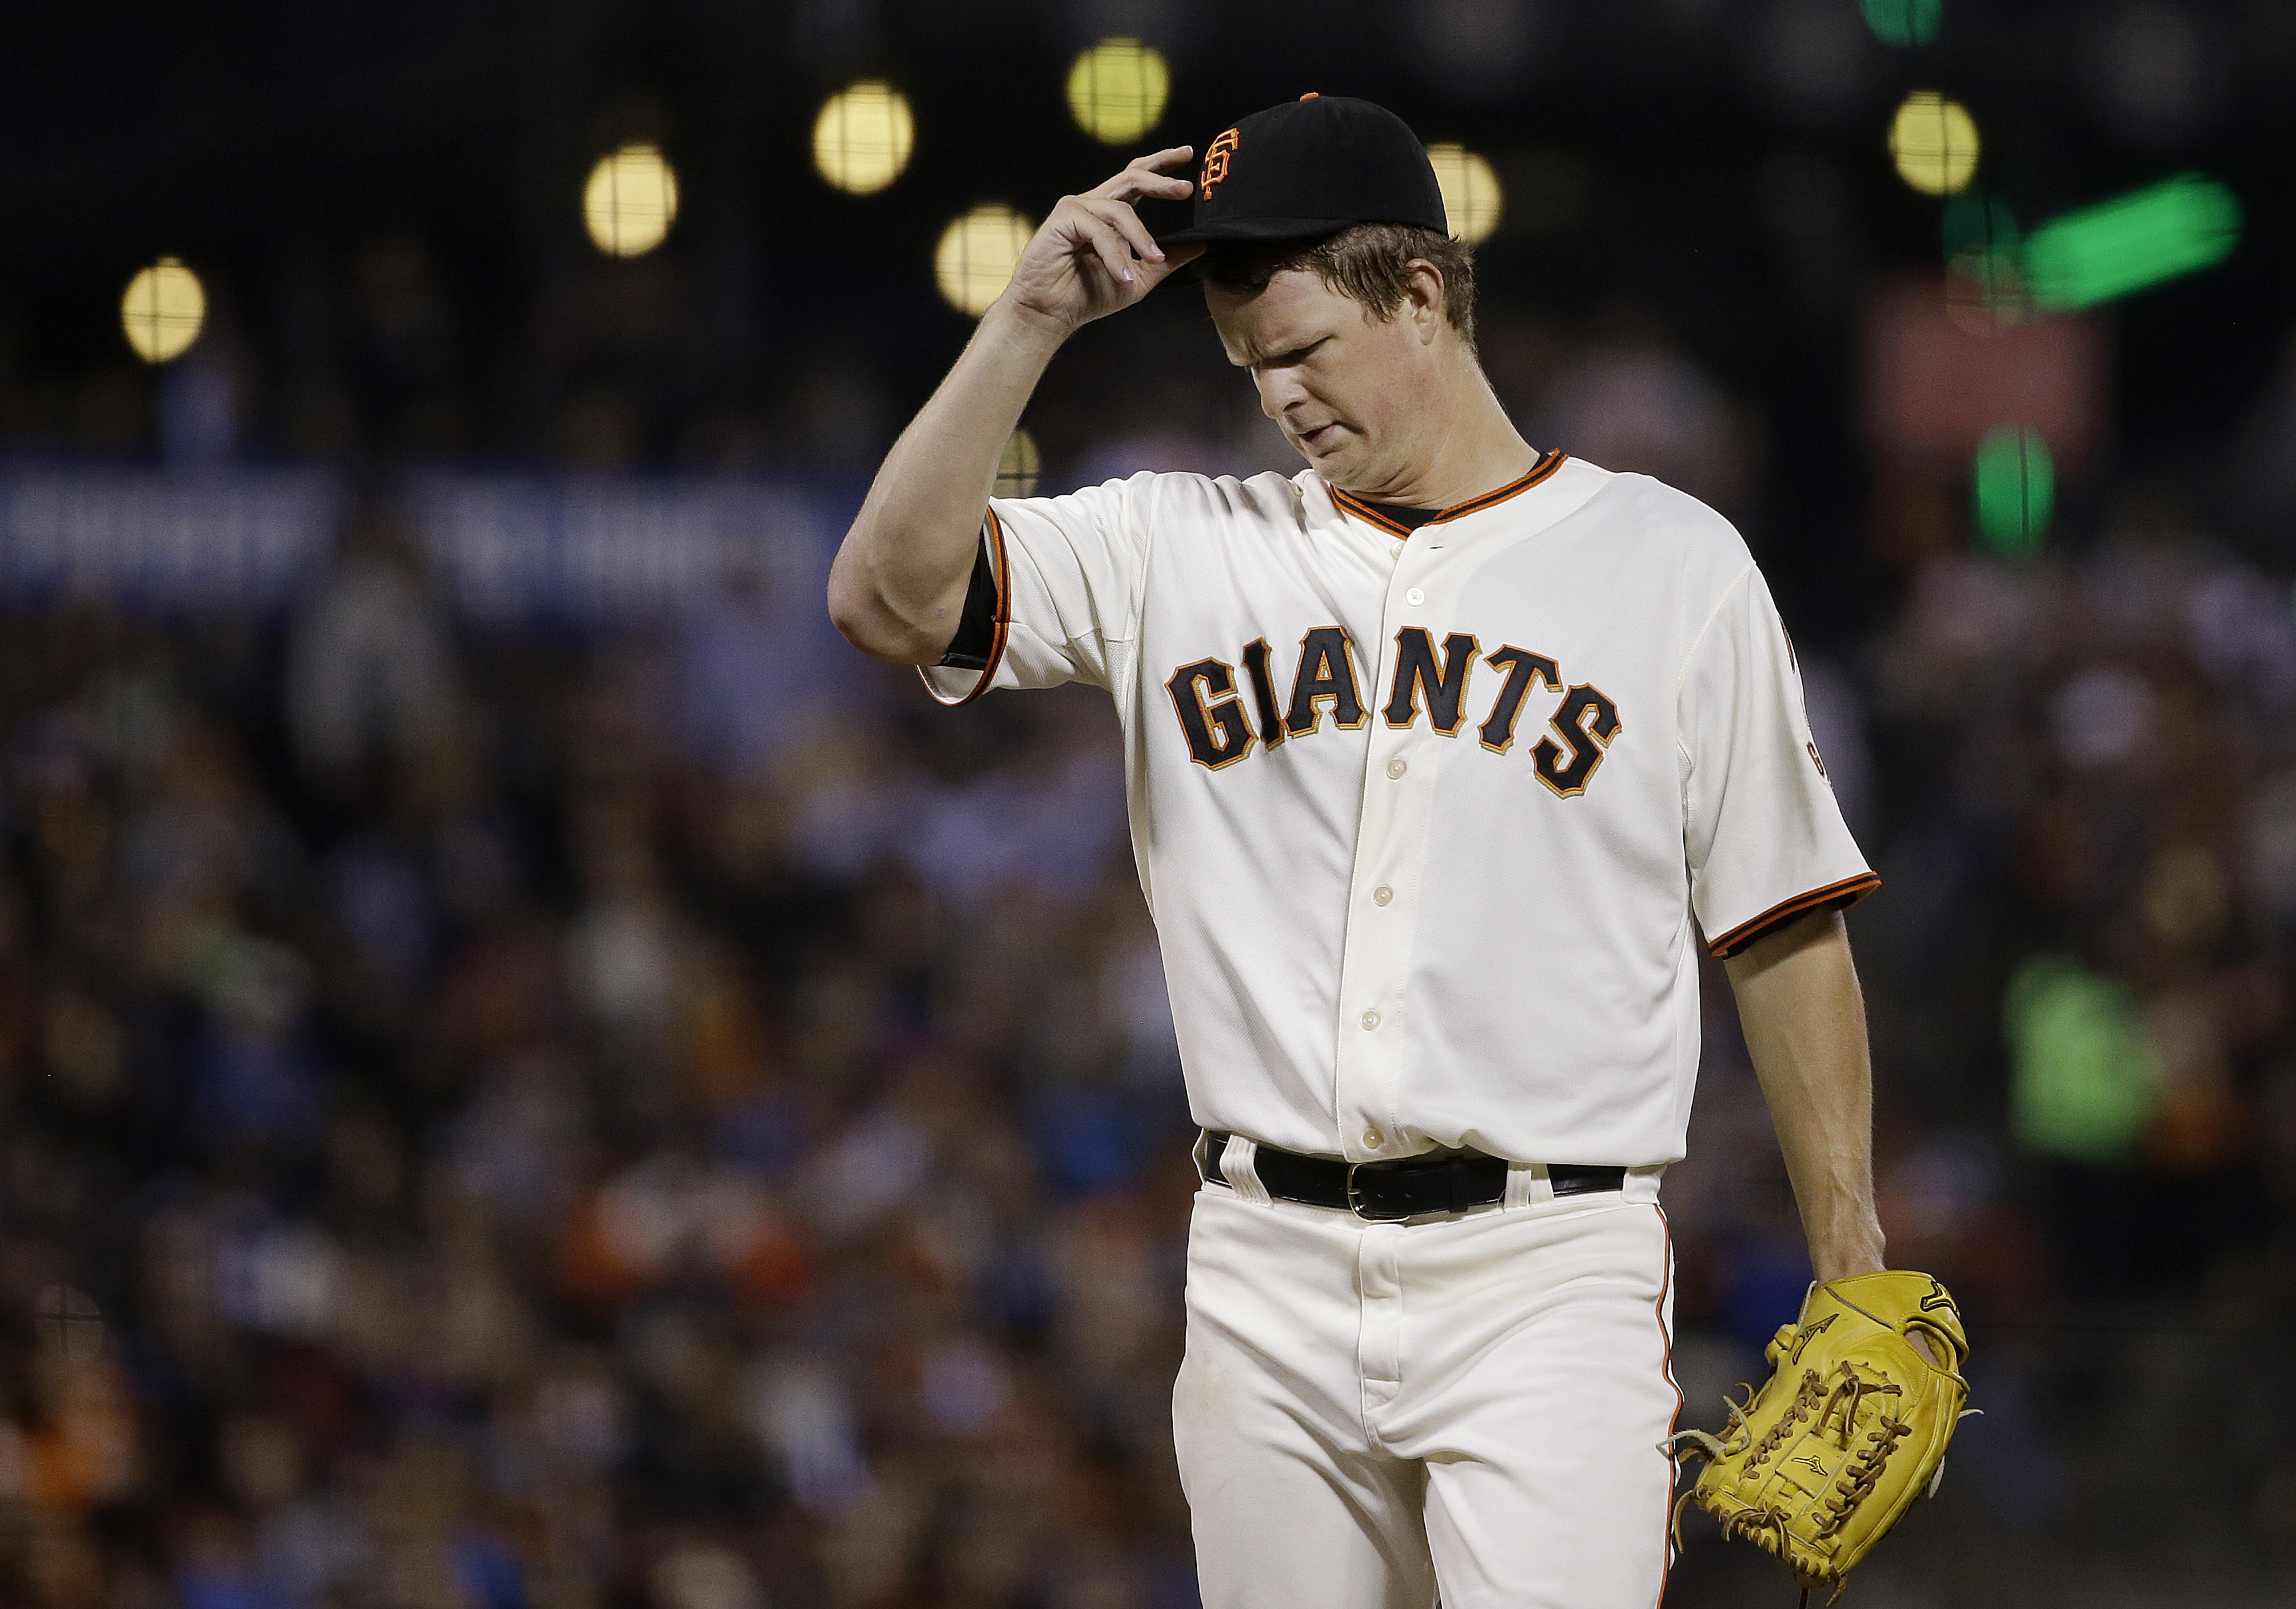 San Francisco Giants pitcher Matt Cain reacts during the fourth inning of a baseball game against the Chicago Cubs in San Francisco, Tuesday, Aug. 25, 2015. (AP Photo/Jeff Chiu)